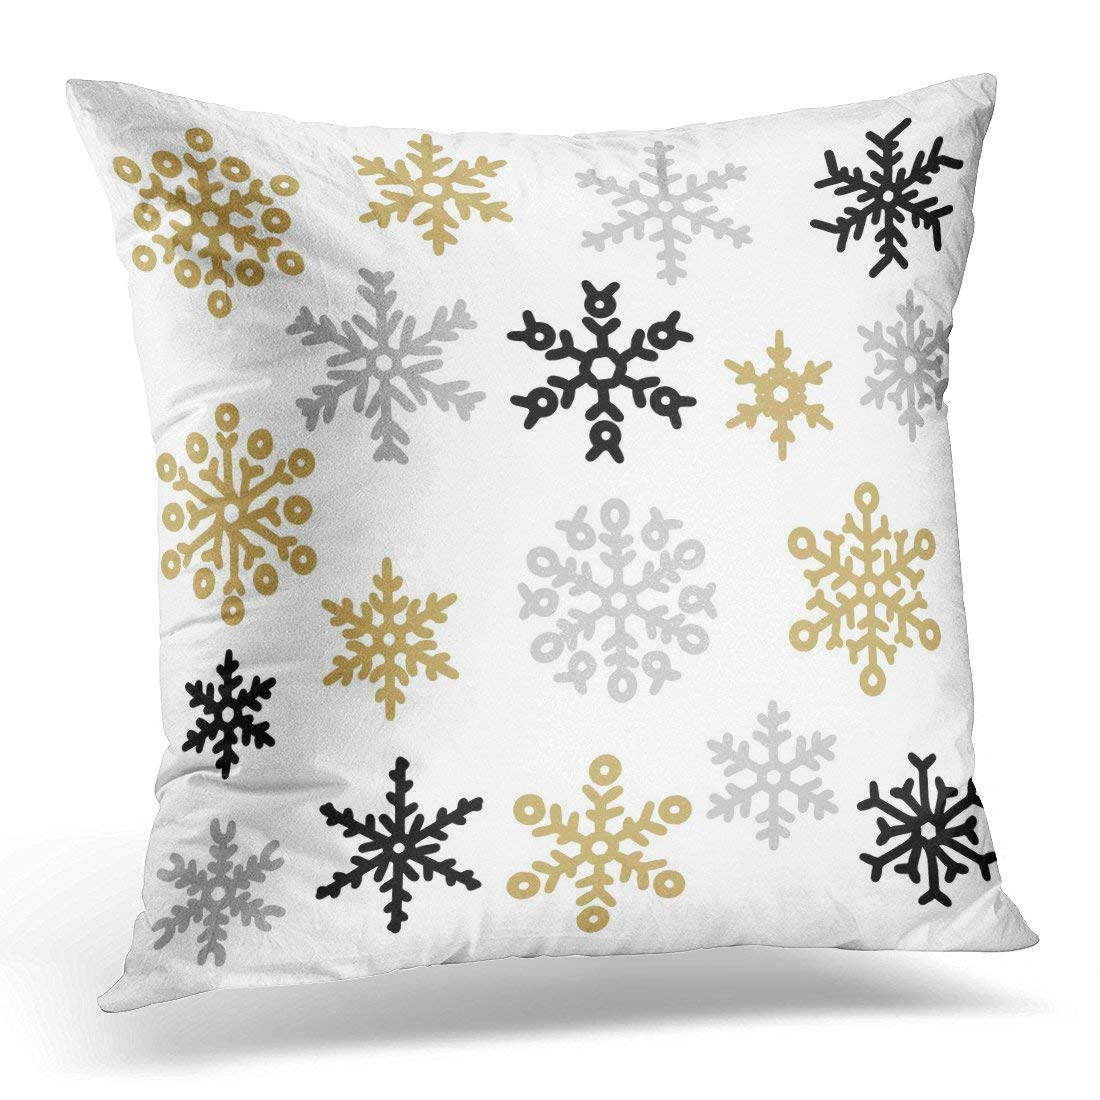 USART Black Christmas of Gold and Silver Snowflakes Holiday Collection White Cold Pillow Case Pillow Cover 20x20 inch